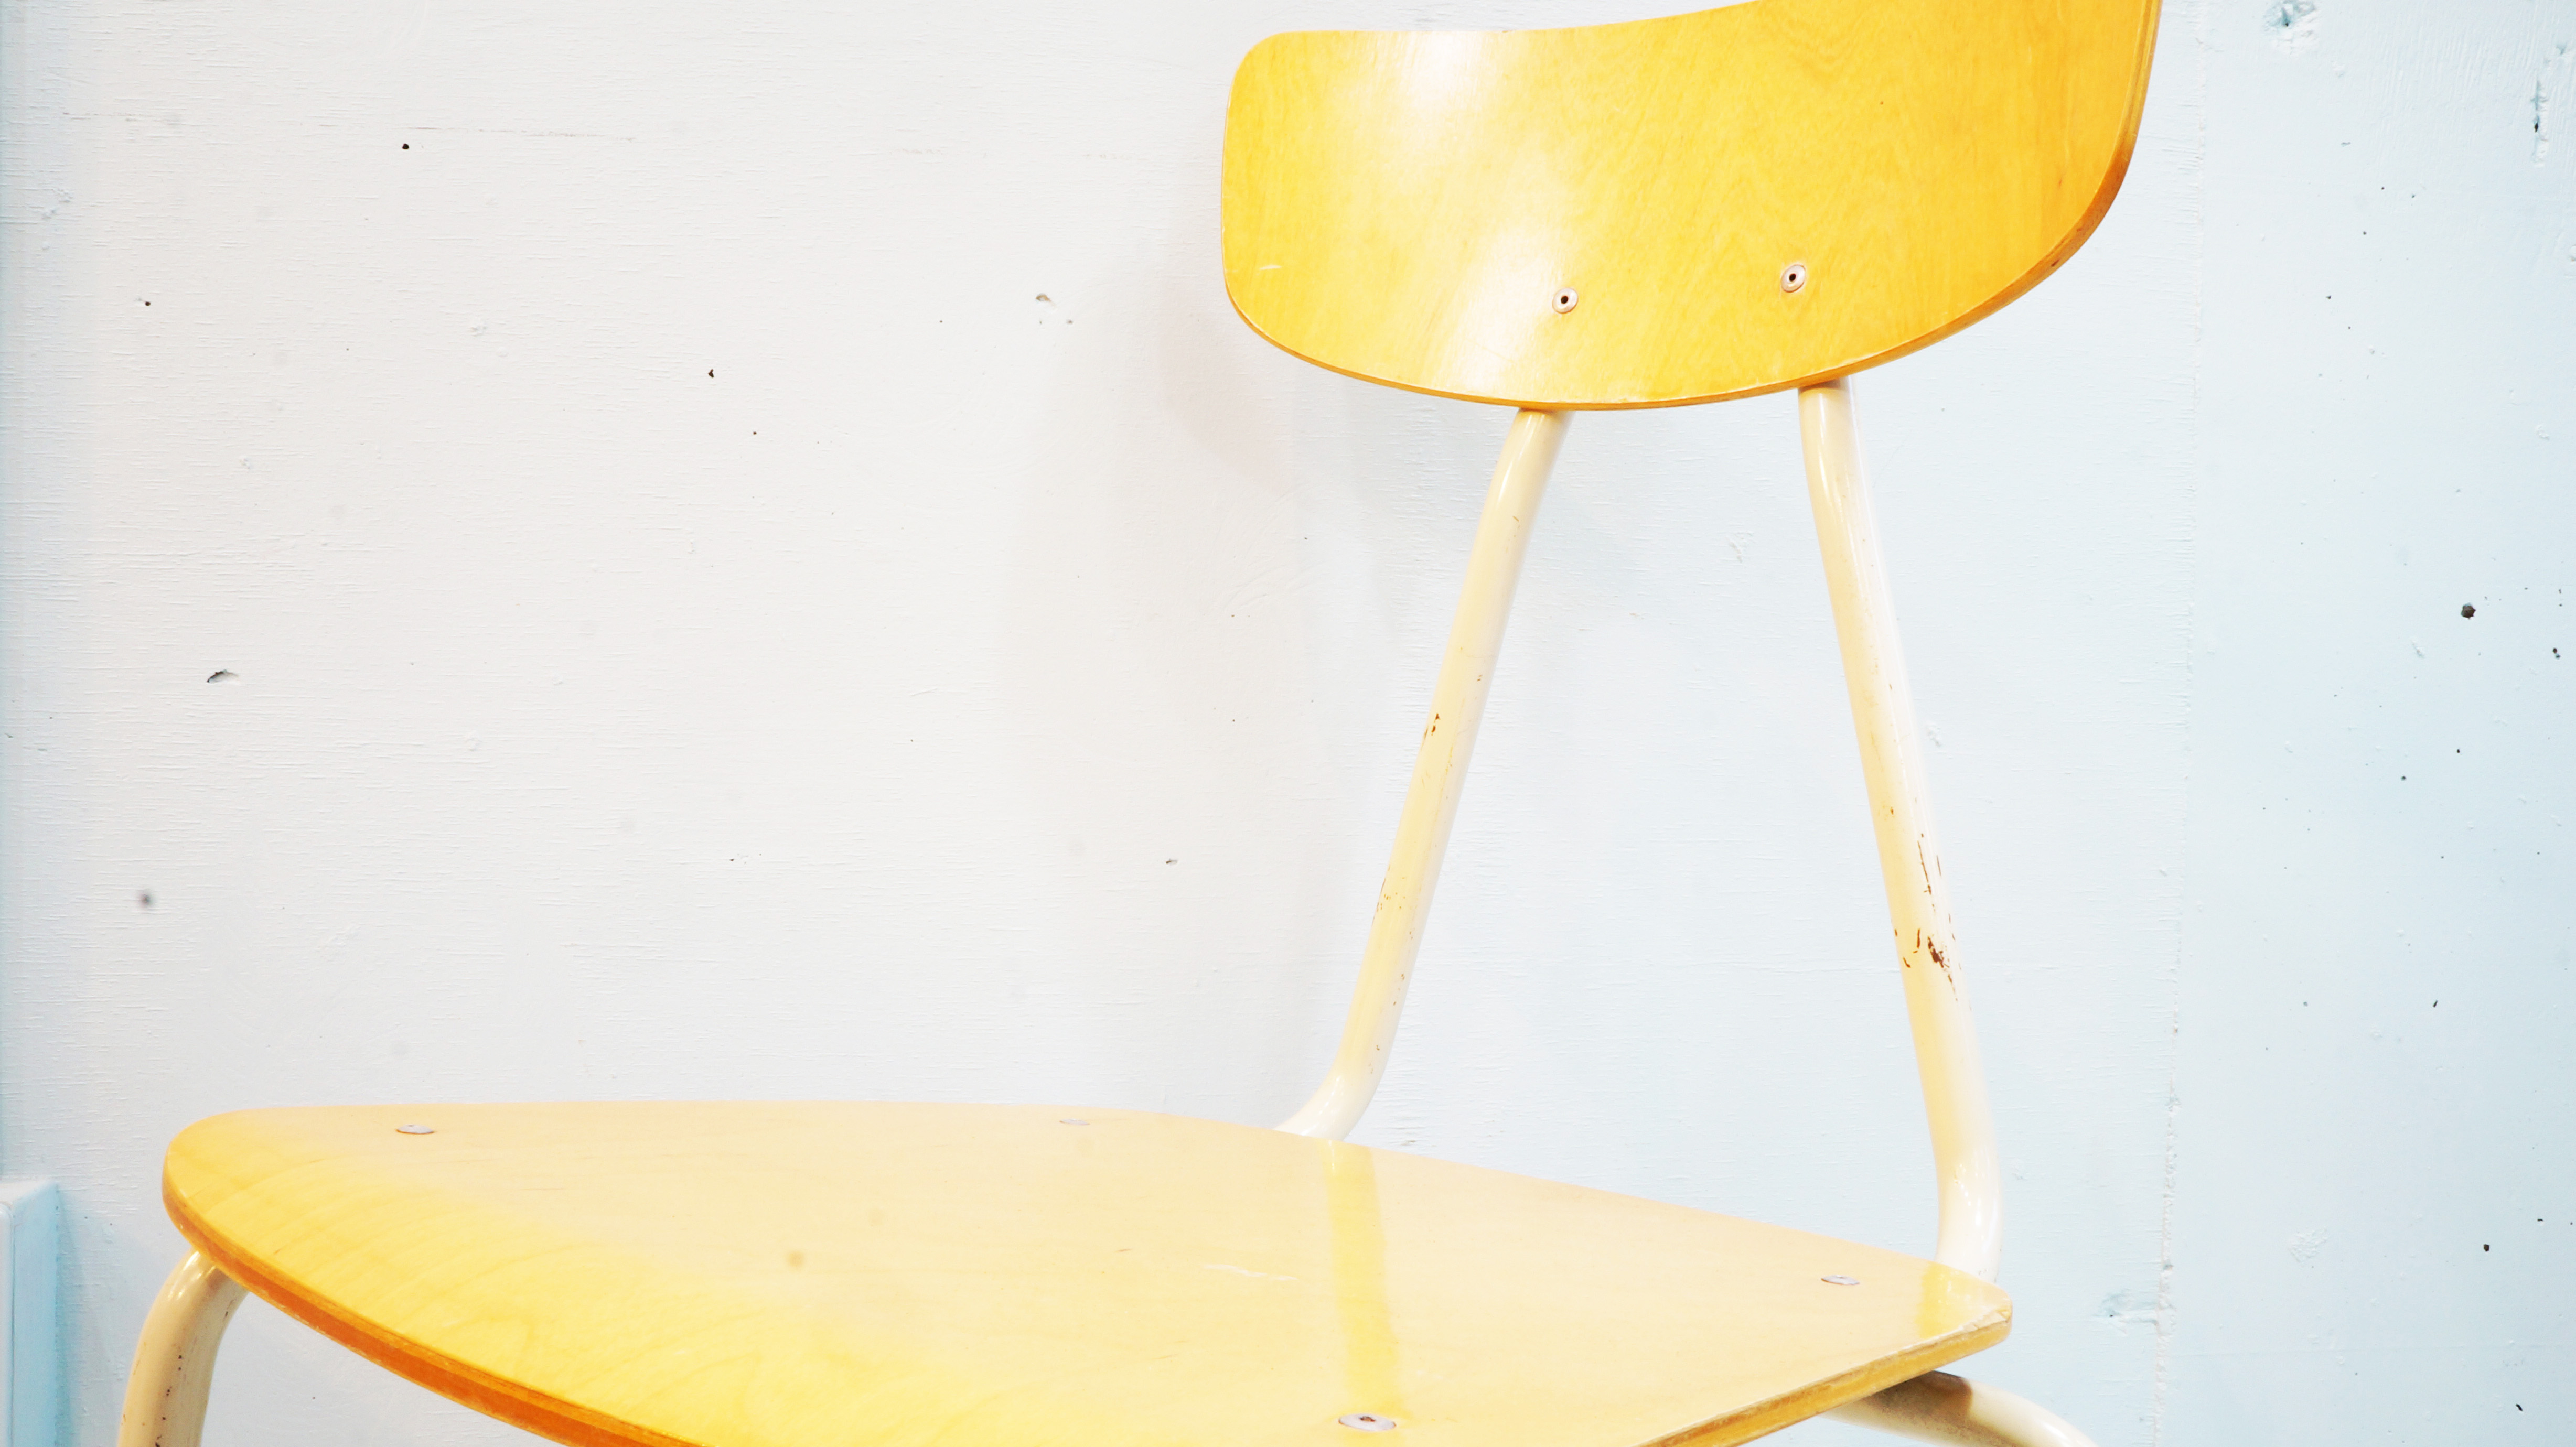 ARY STALMOBLER SCHOOL CHAIR made in SWEDEN / スェーデン製 スクールチェア 学校椅子